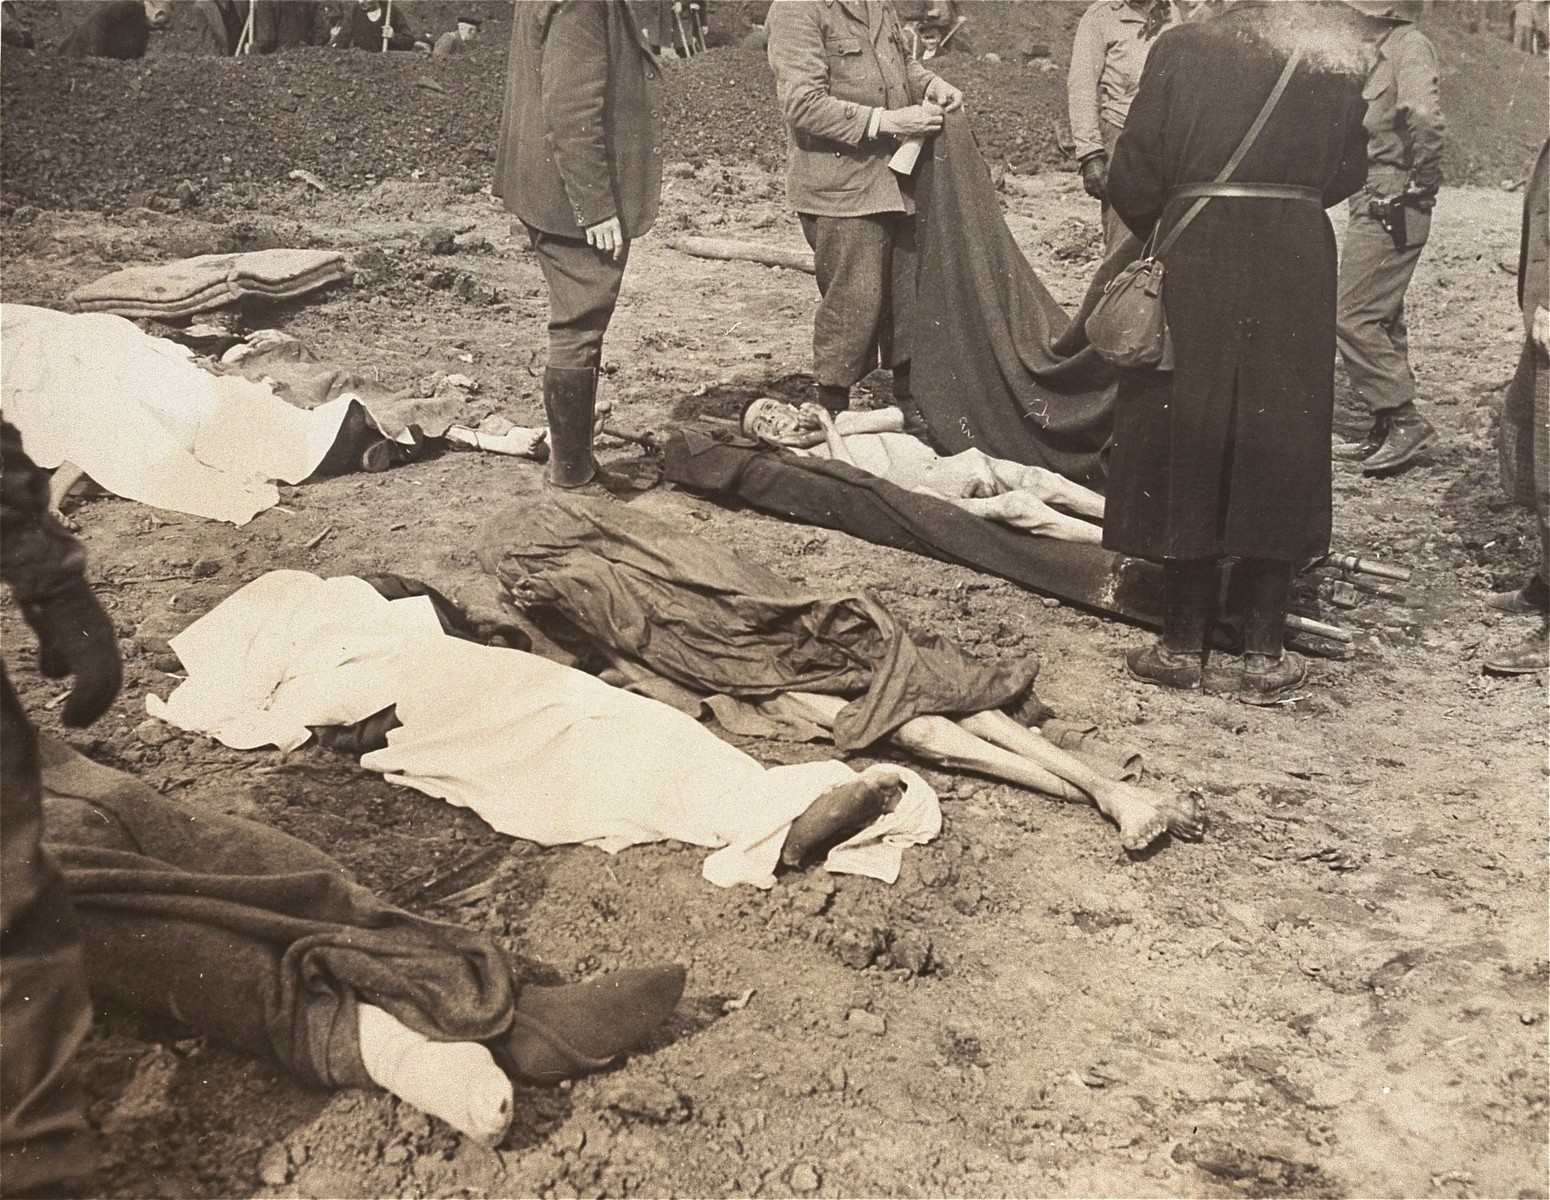 German civilians from the nearby town of Nordhausen prepare the bodies of prisoners found at the Nordhausen concentration camp for burial.